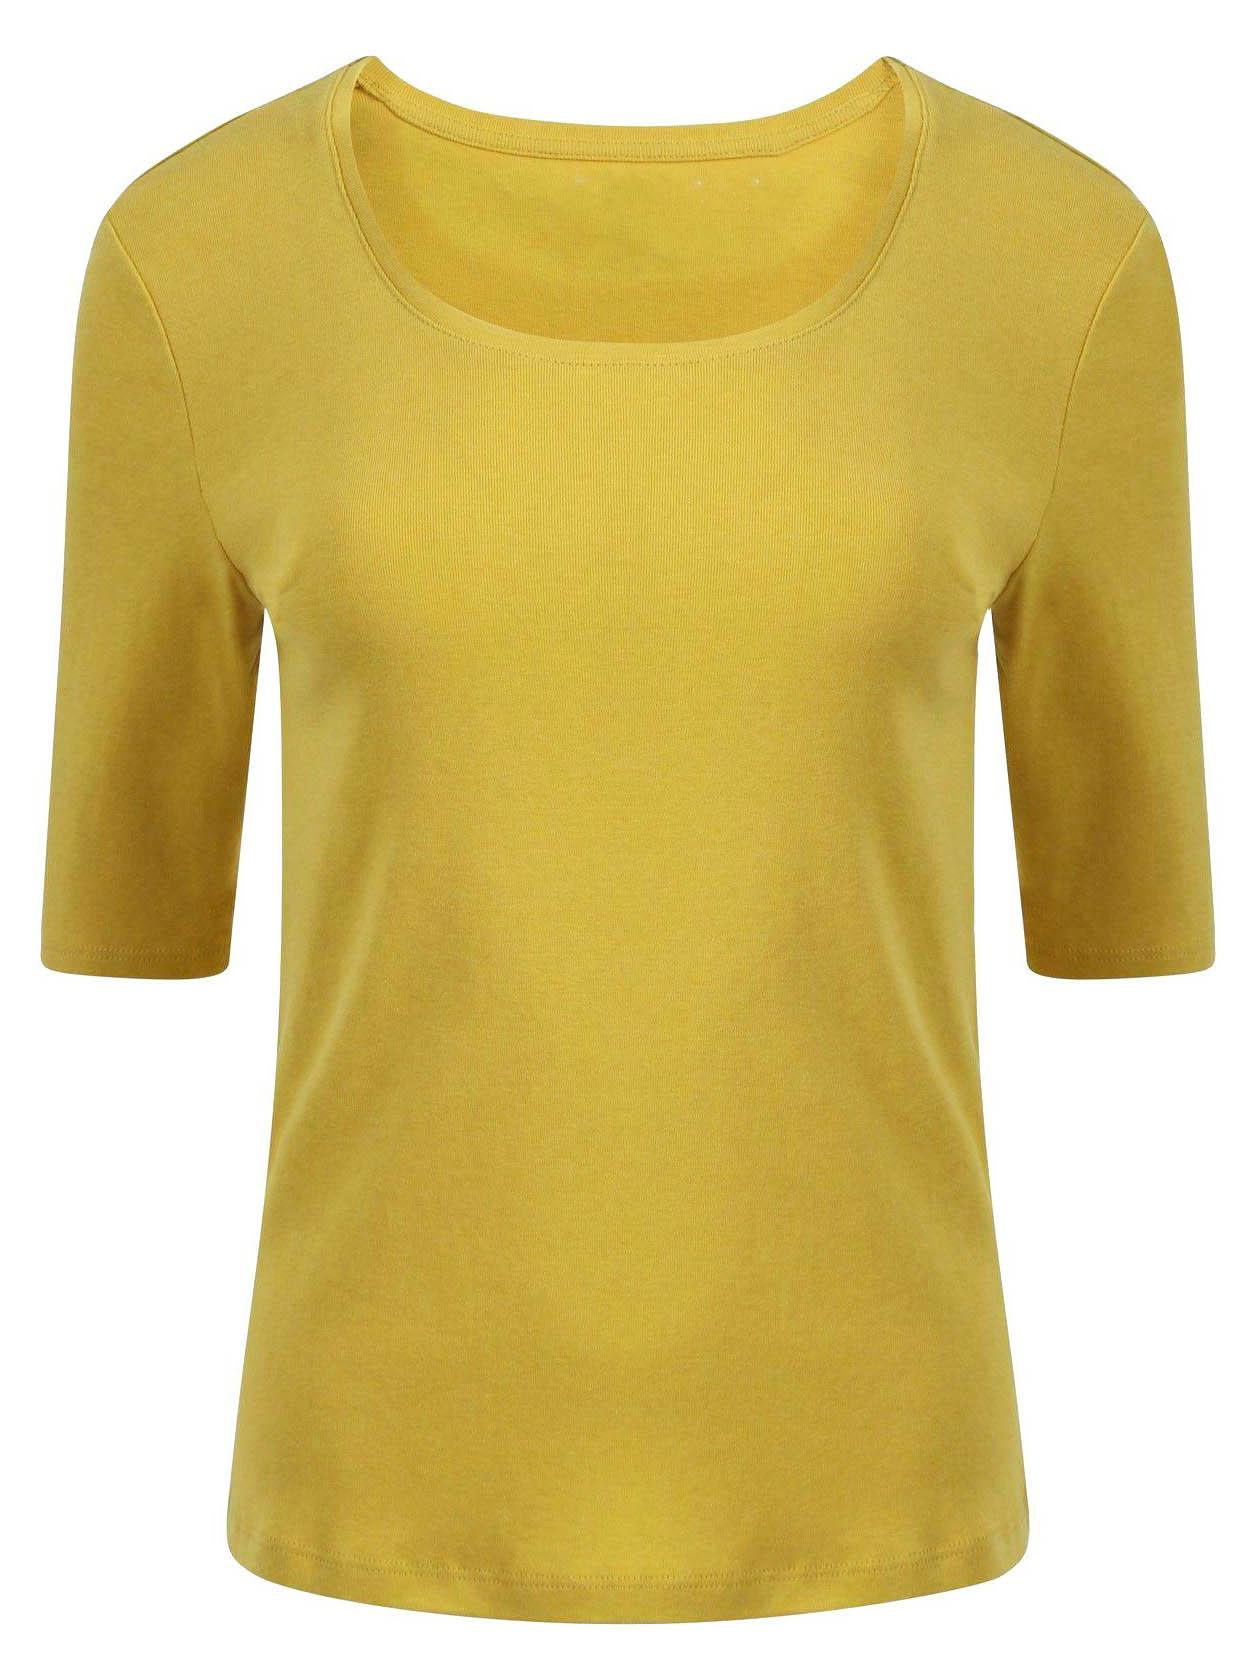 MARKS-AND-SPENCER-Womens-Scoop-Neck-Half-Sleeve-T-shirt-CLEARANCE thumbnail 19